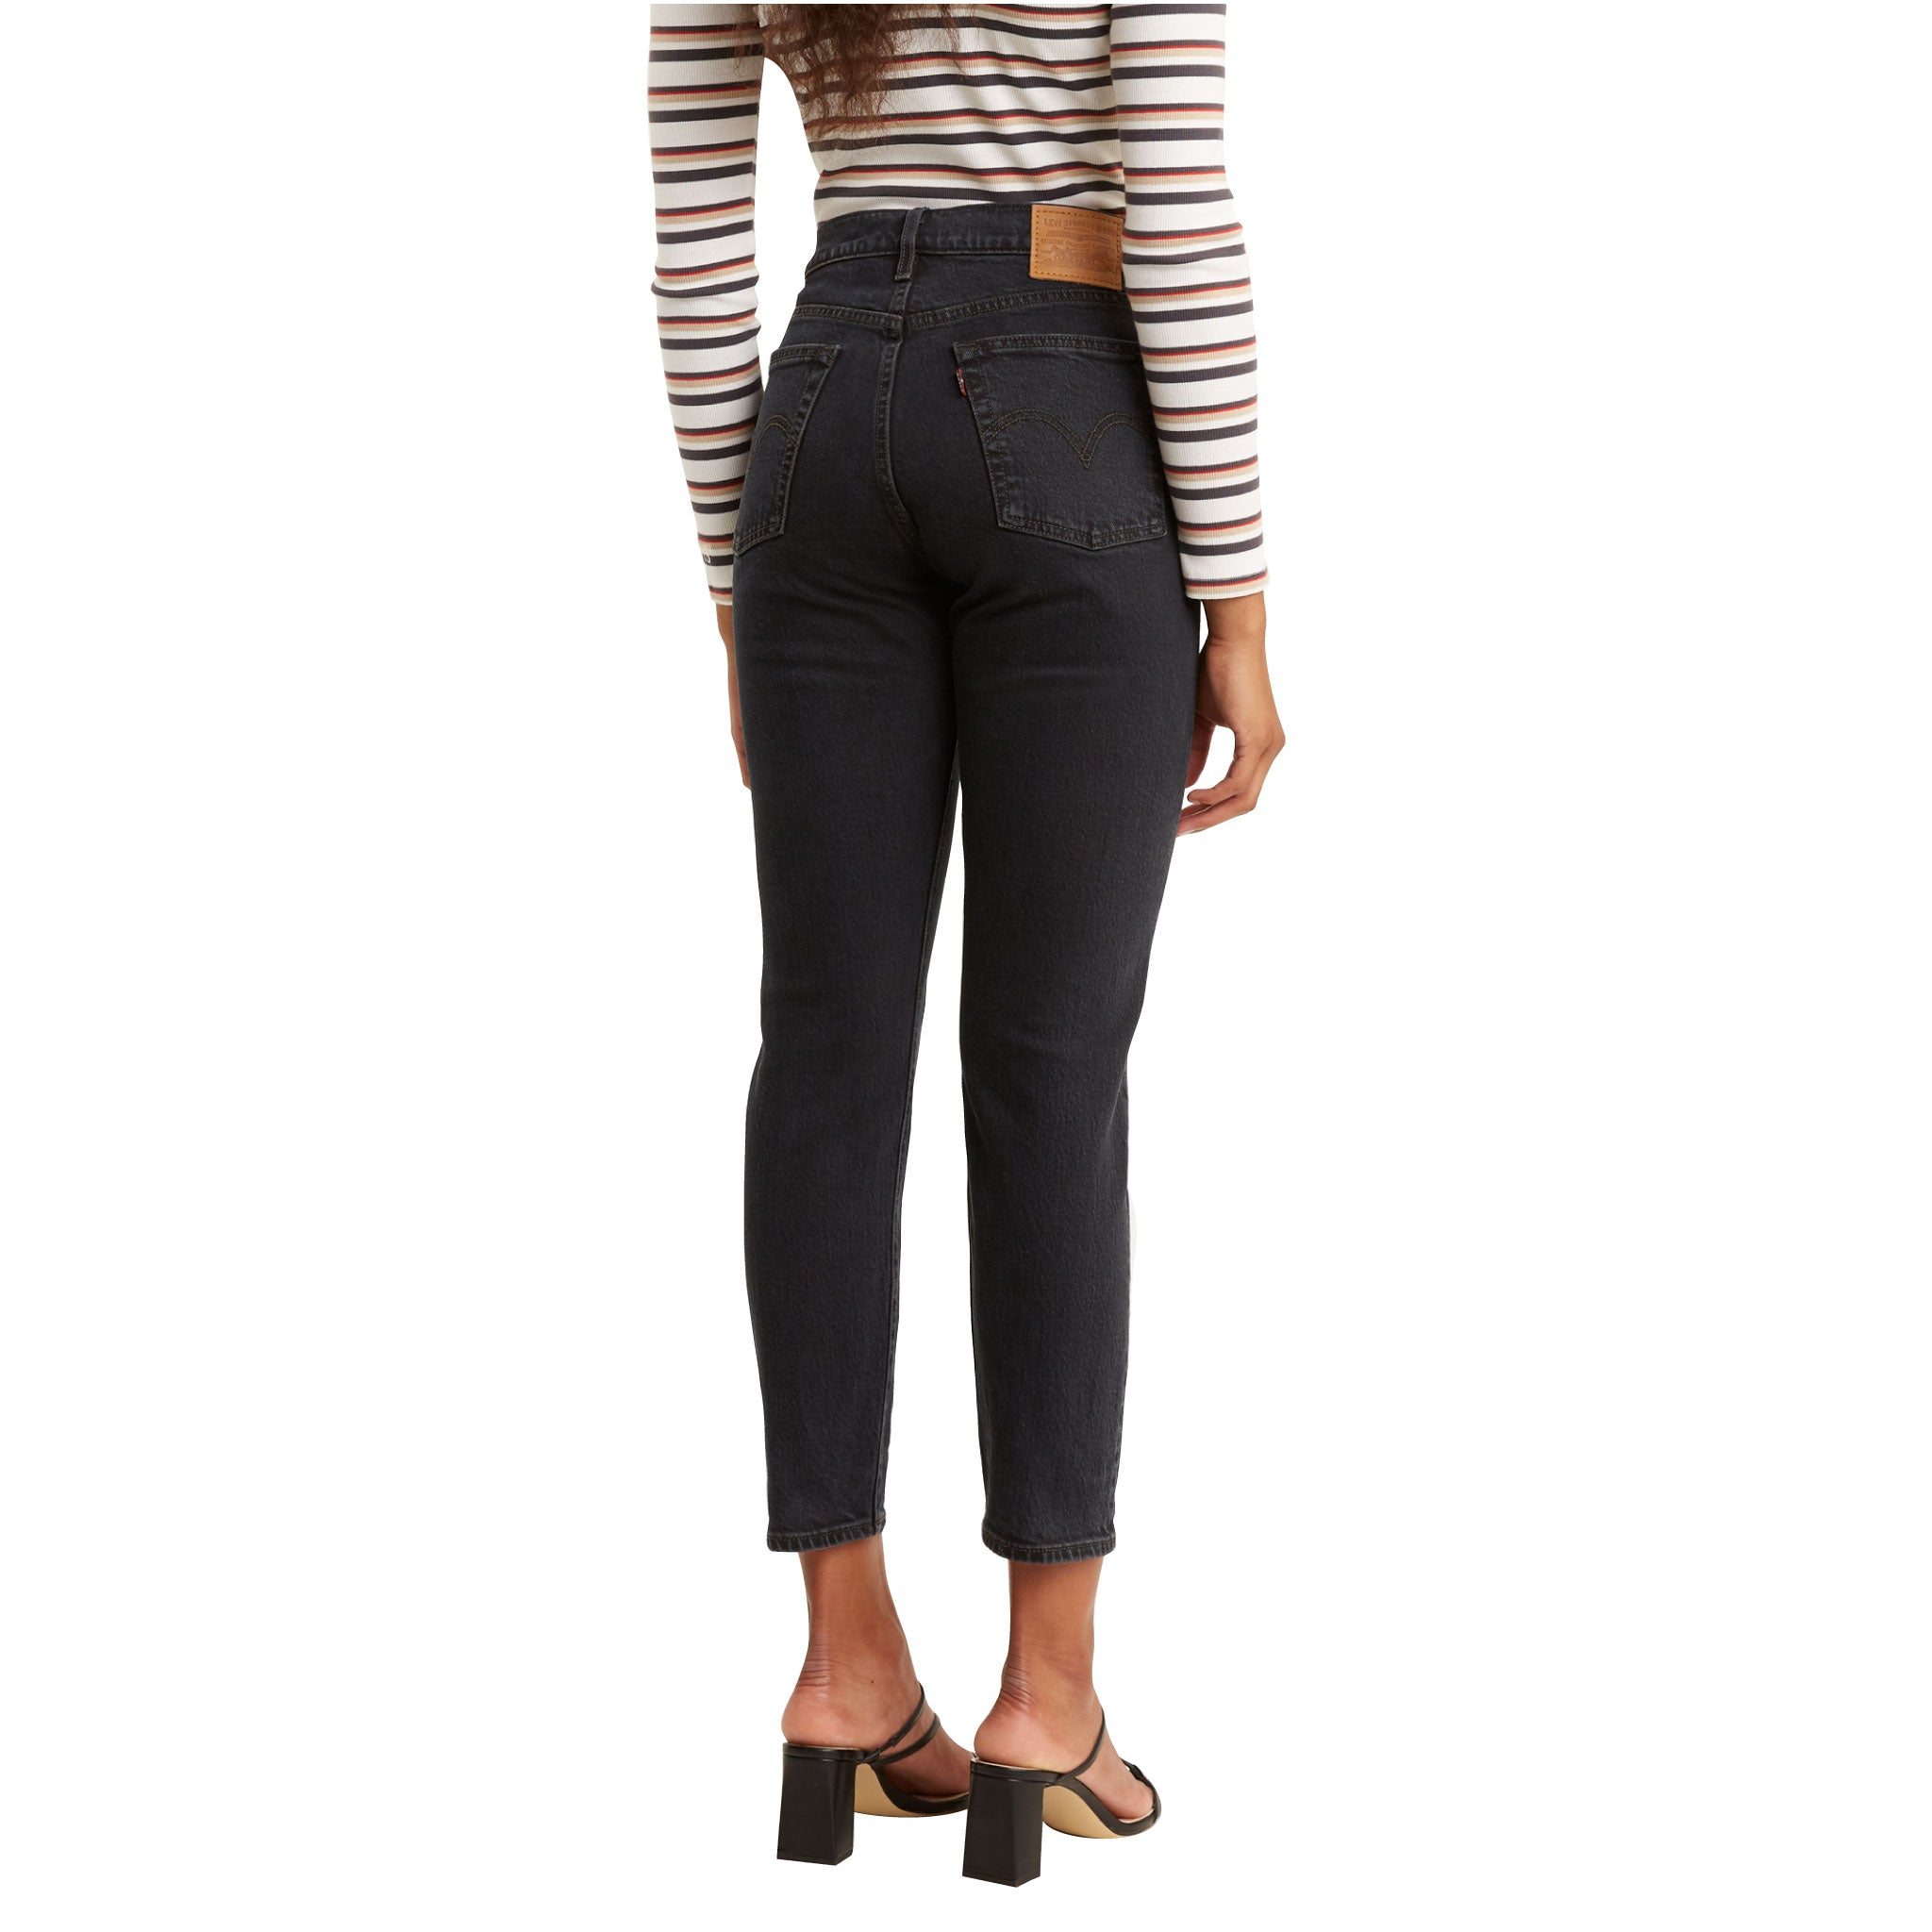 Denim, low stretch  Button fly, 5 - pocket styling  High rise, snug through hip and thigh, straight leg  99% Cotton, 1% Elastane